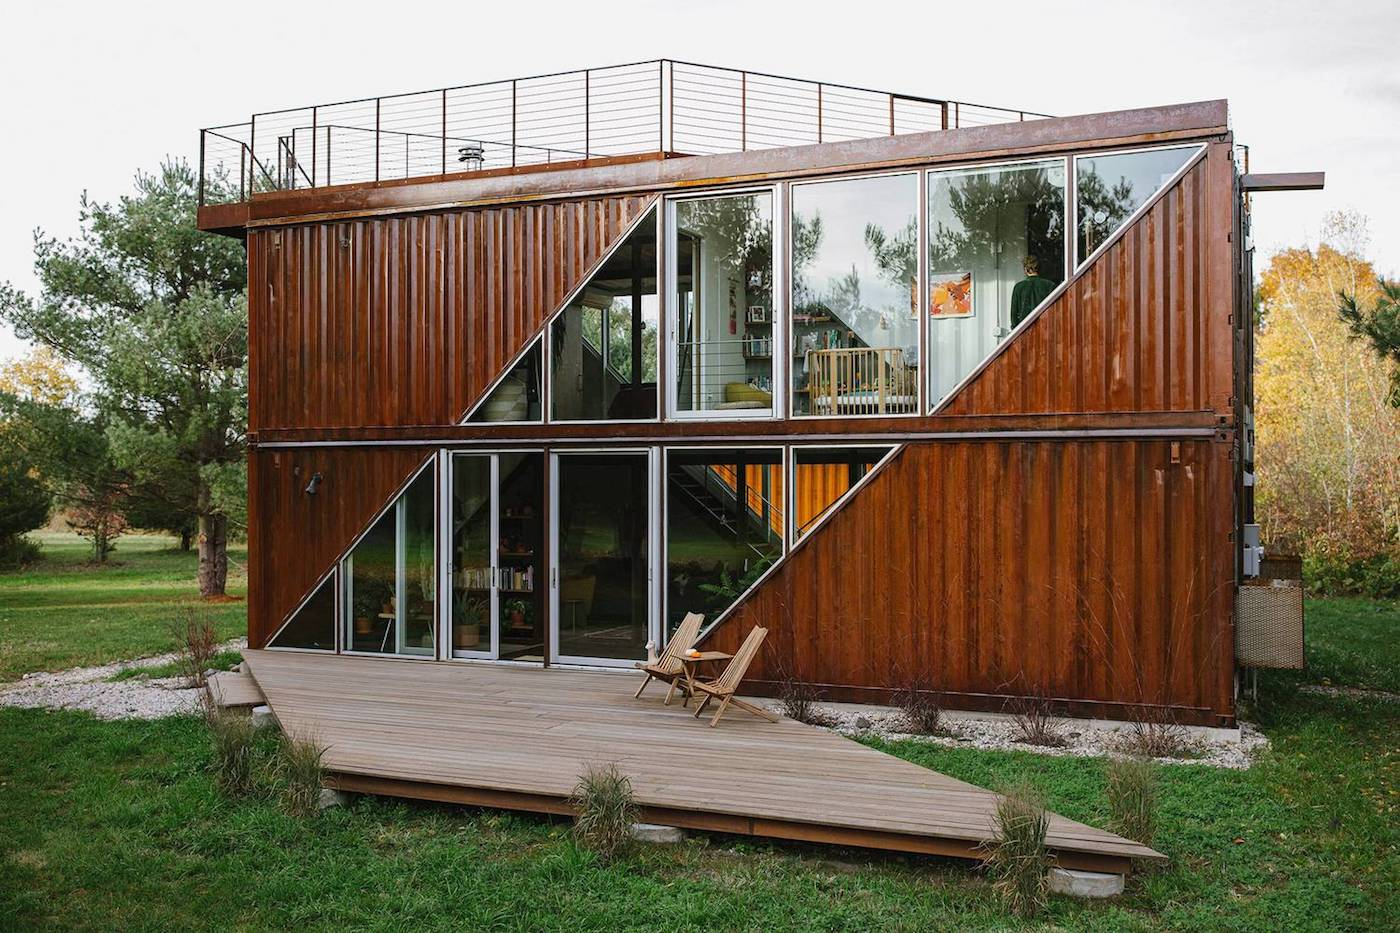 Shipping container home clad in corten steel